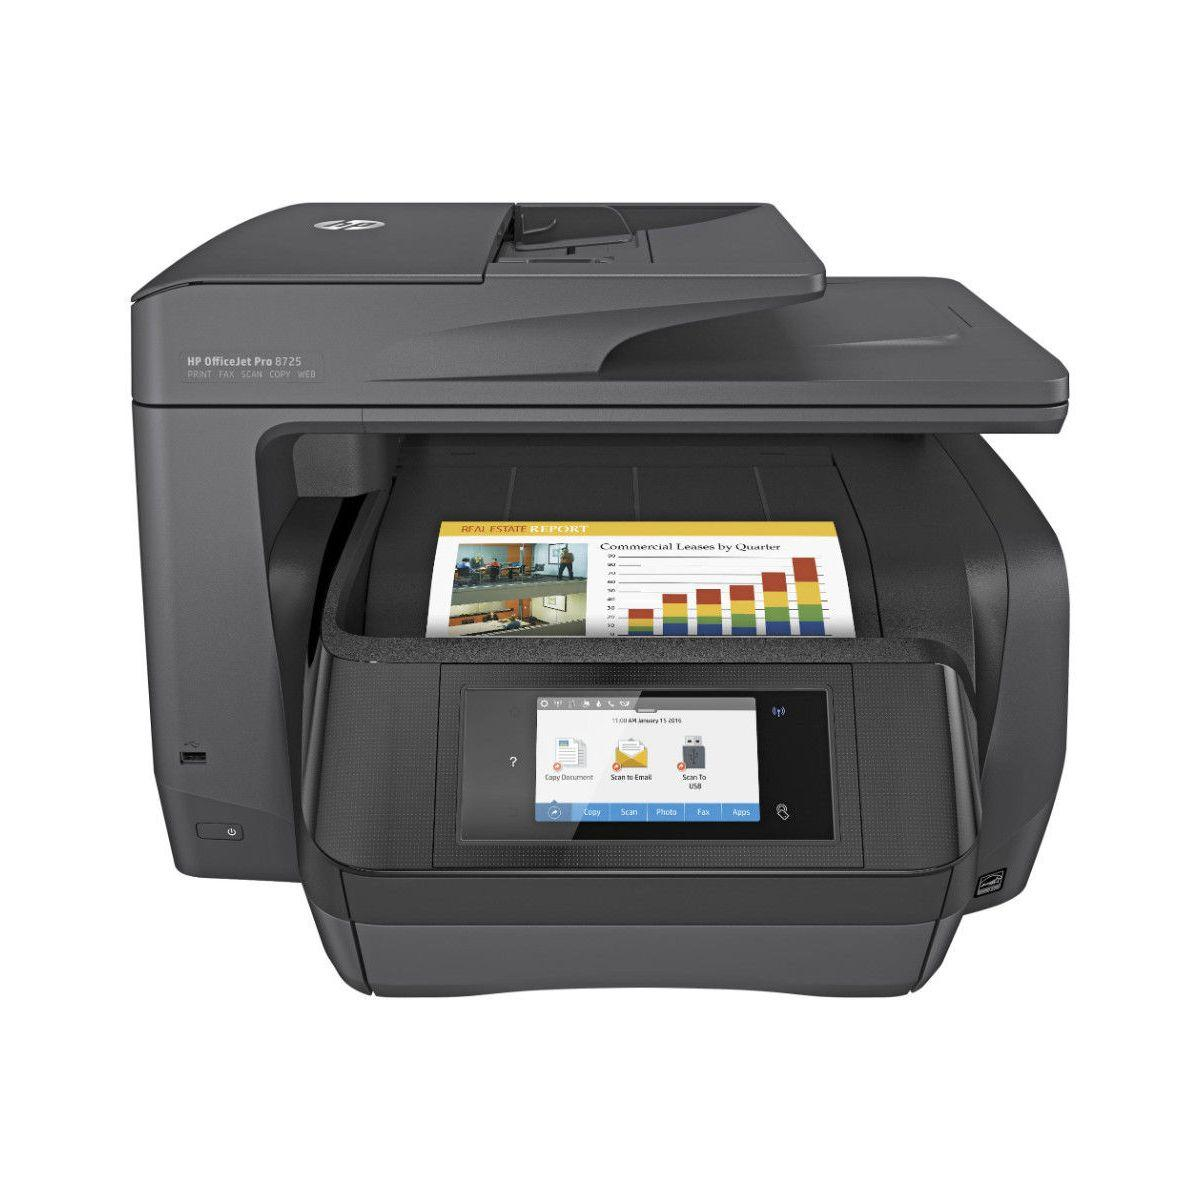 Imprimante jet d'encre hp office jet pro 8725